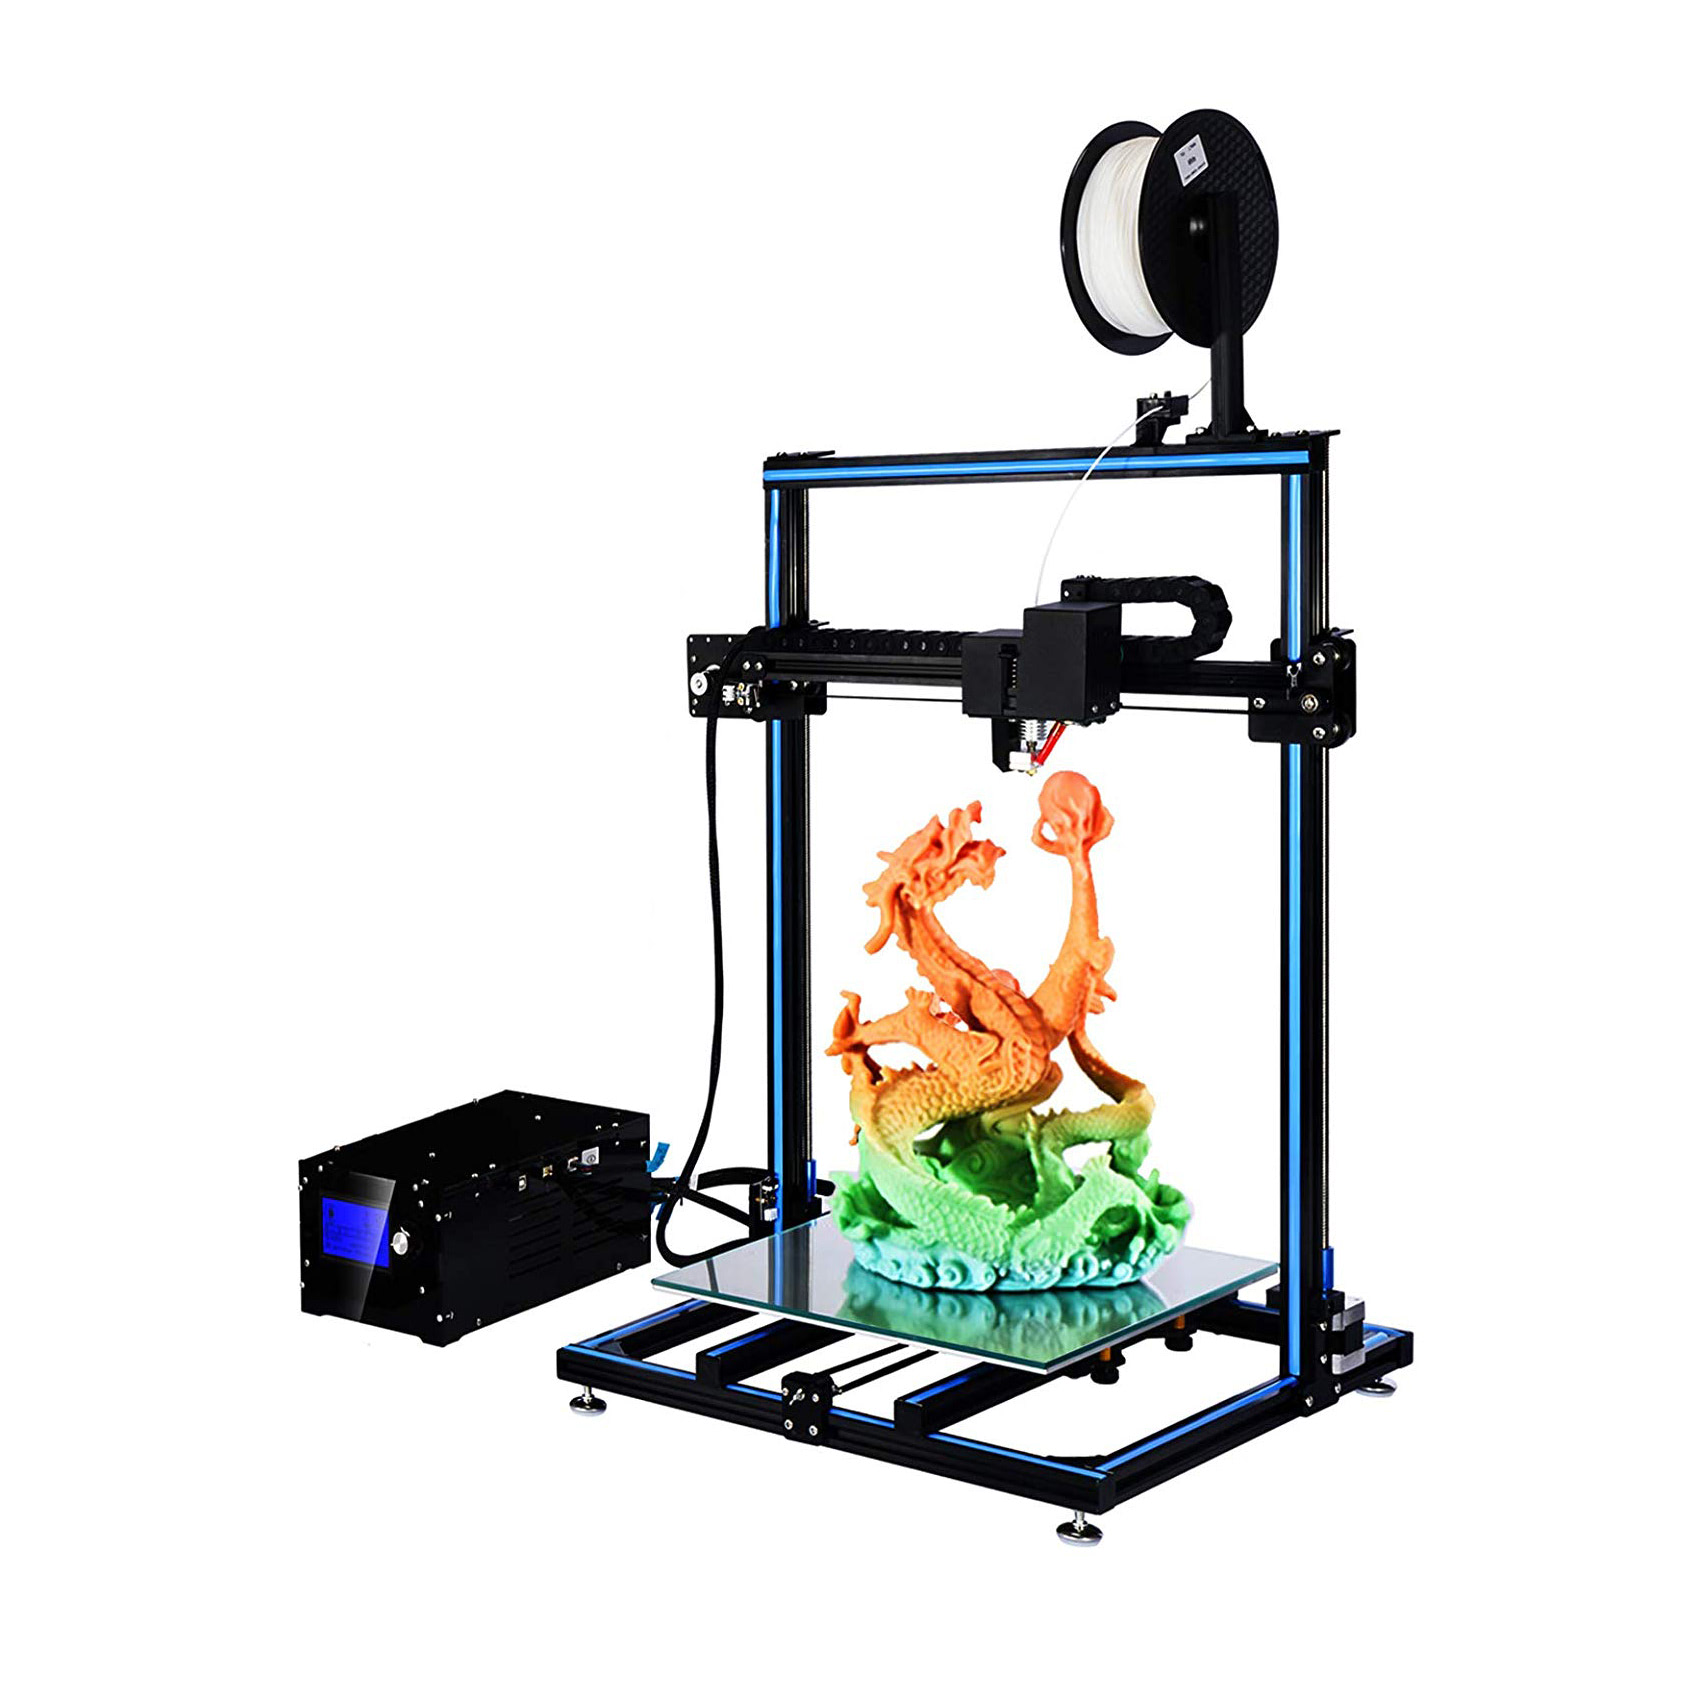 adimlab gantry 3d printer